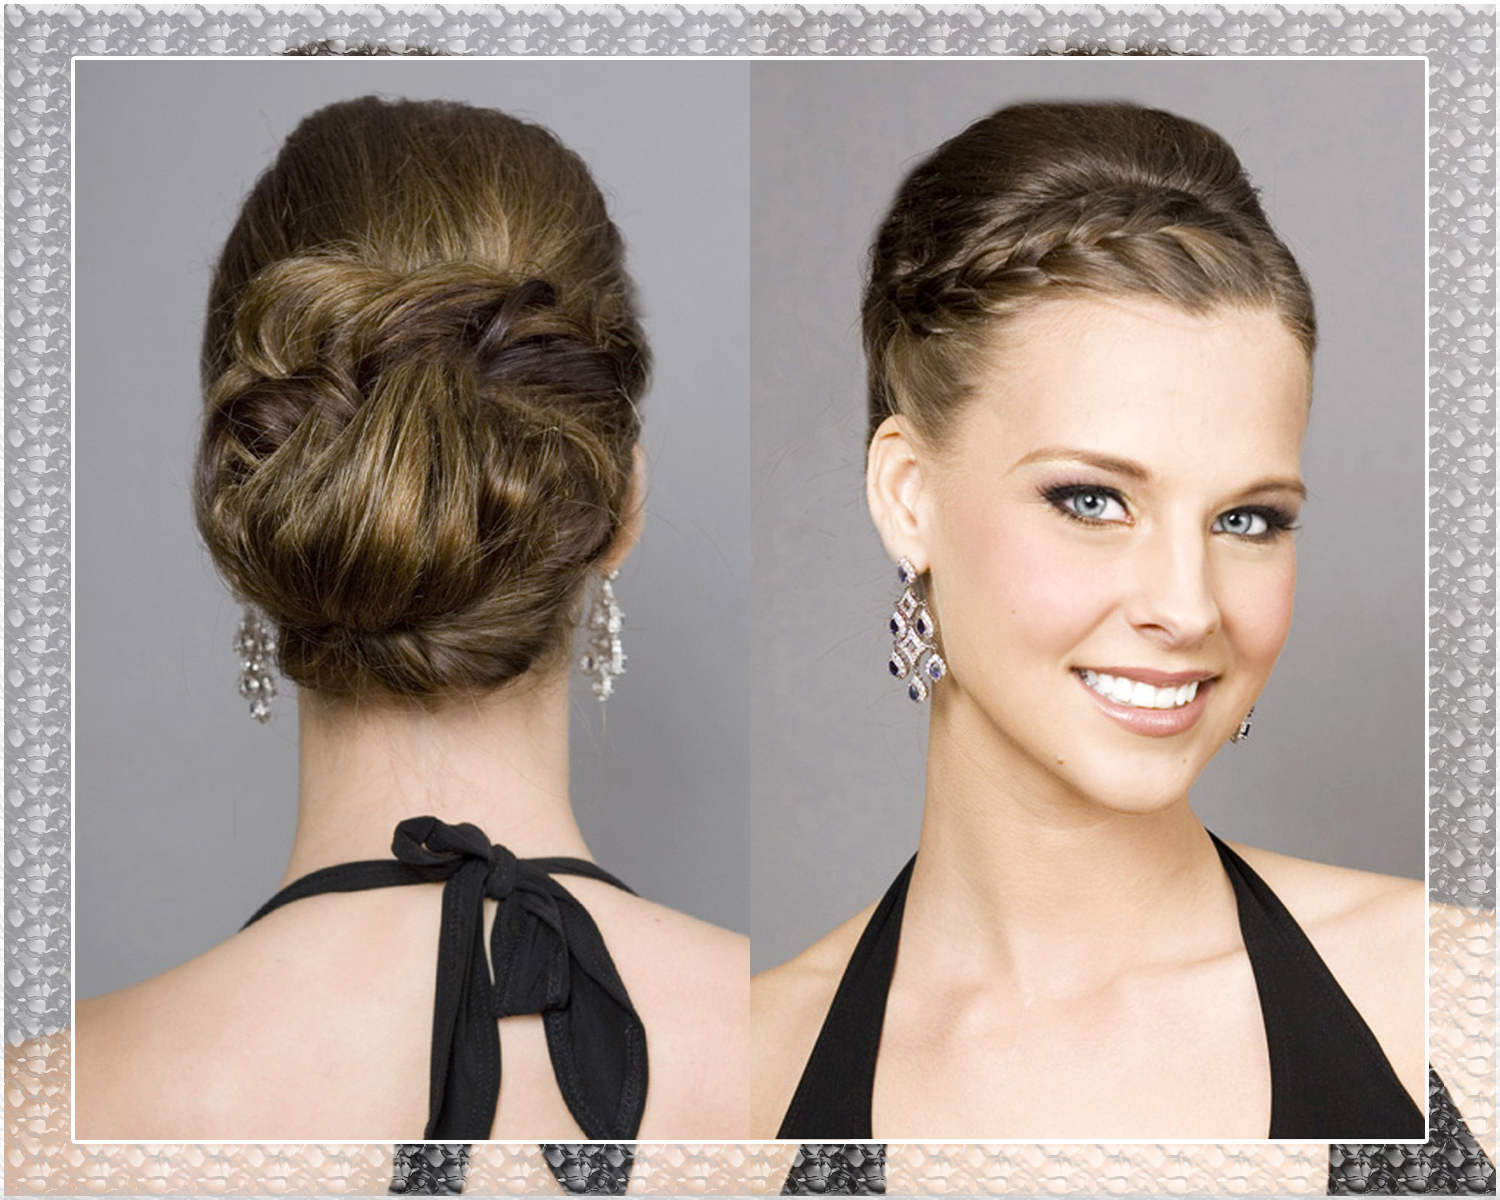 Braided Updo Wedding Hairstyles (View 6 of 20)